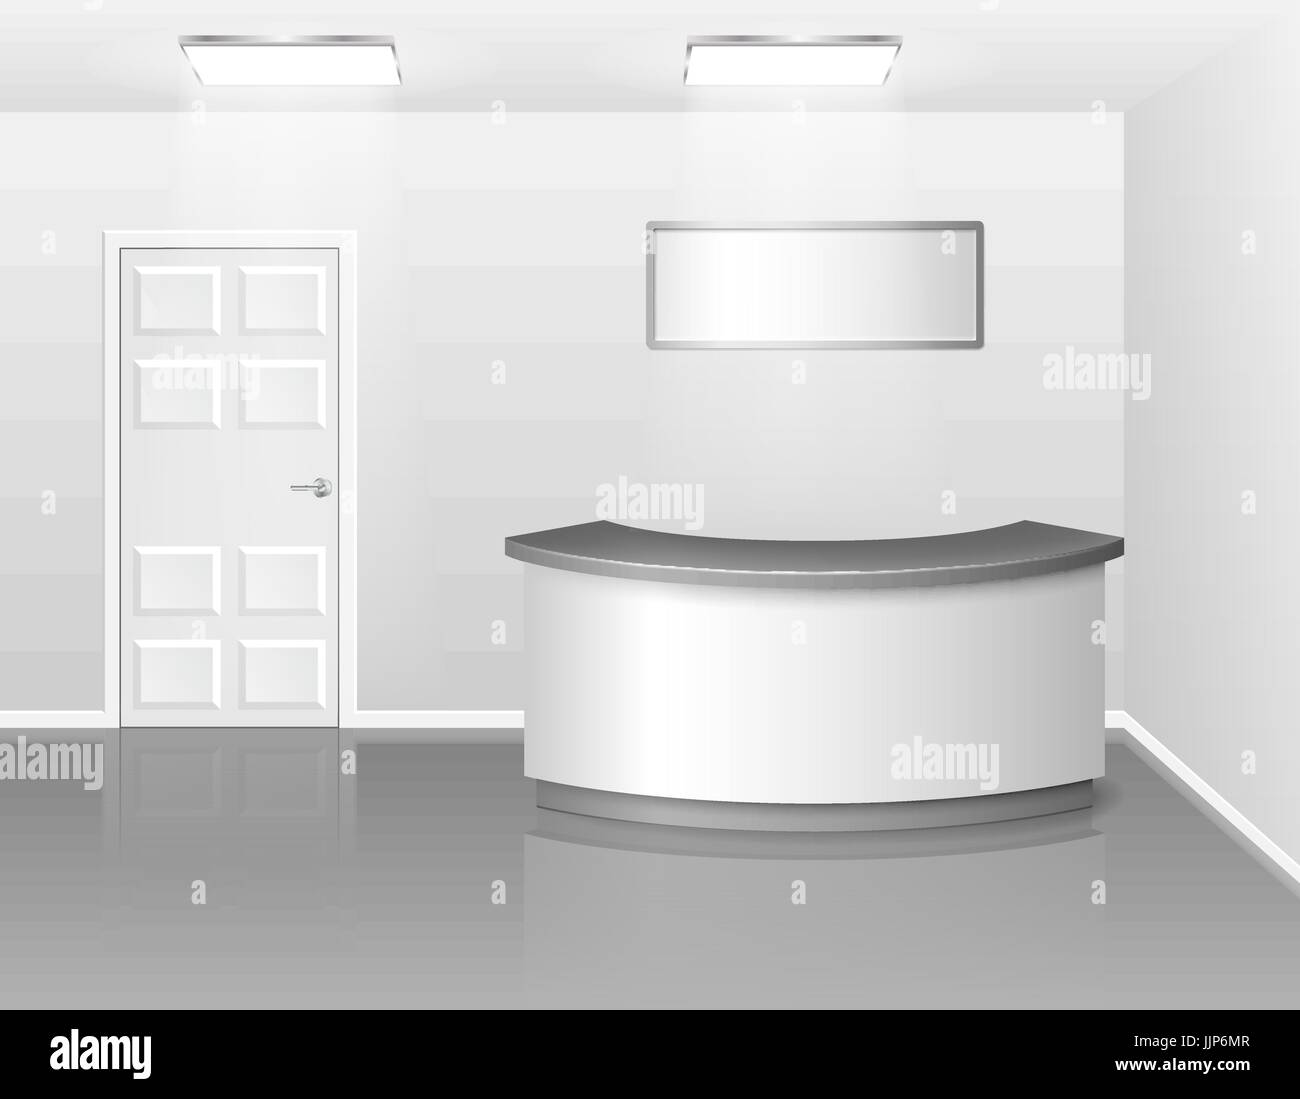 office counter desk. Office Or Hotel Interior With Reception Exhibition Counter Desk. 3d Realistic Vector Illustration. Empty Business Hall Desk